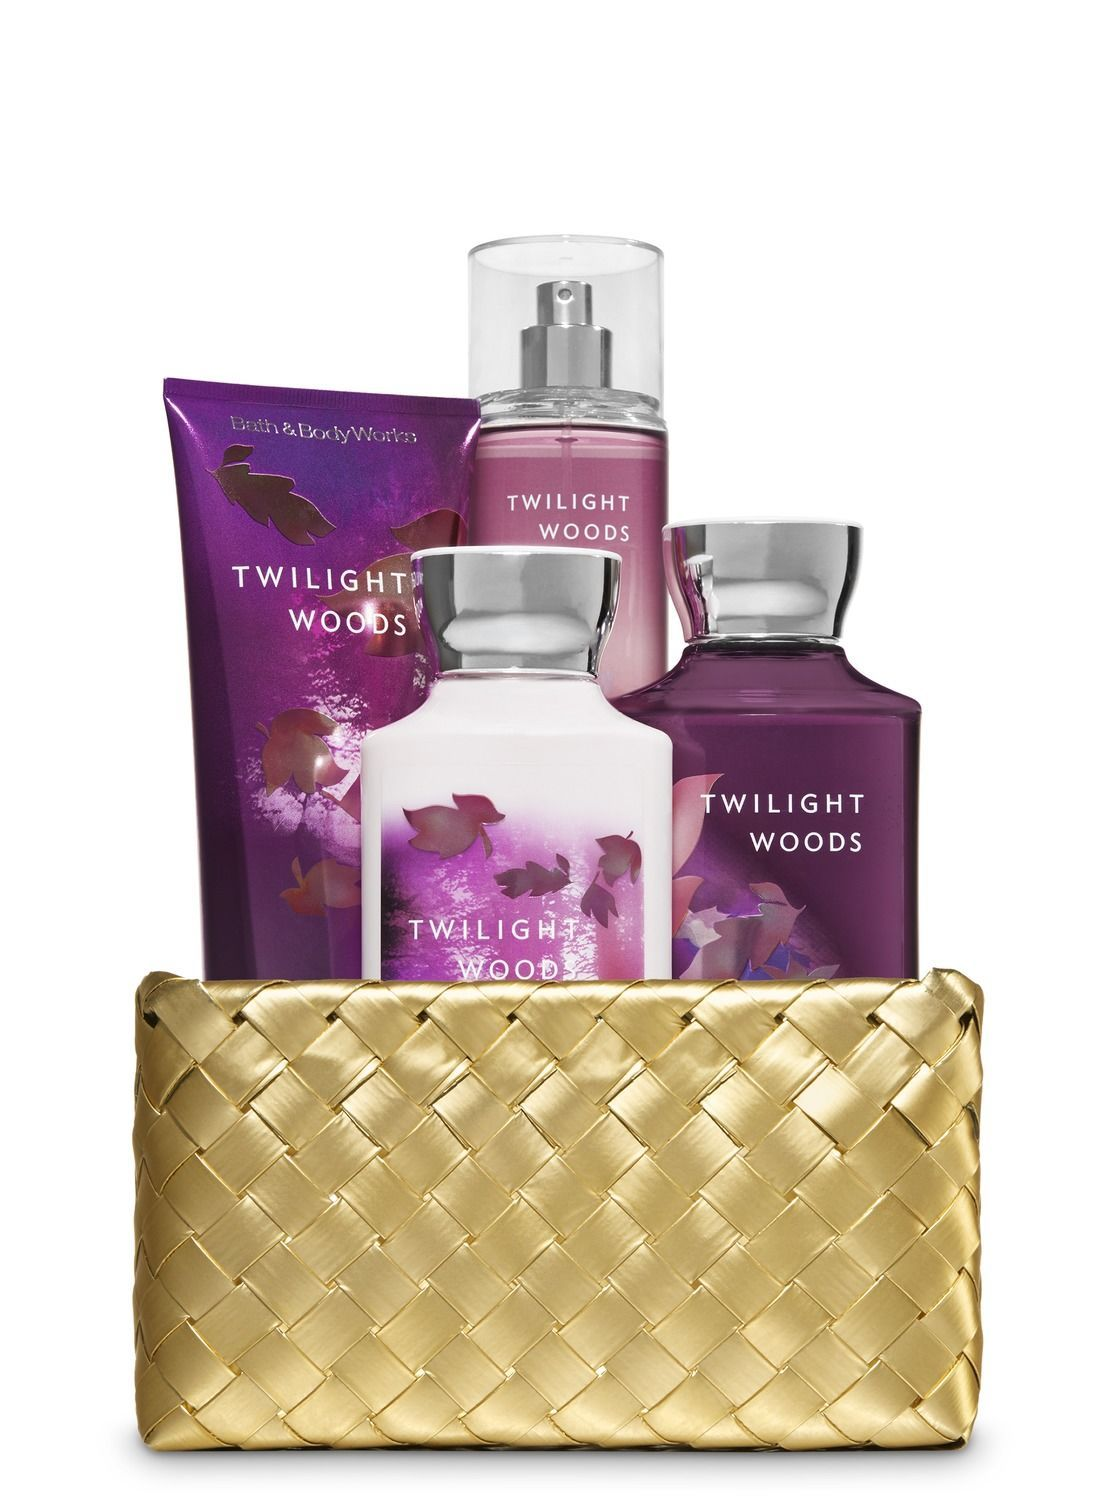 Twilight Woods Gold Woven Basket Gift Kit En 2019 Products Gift